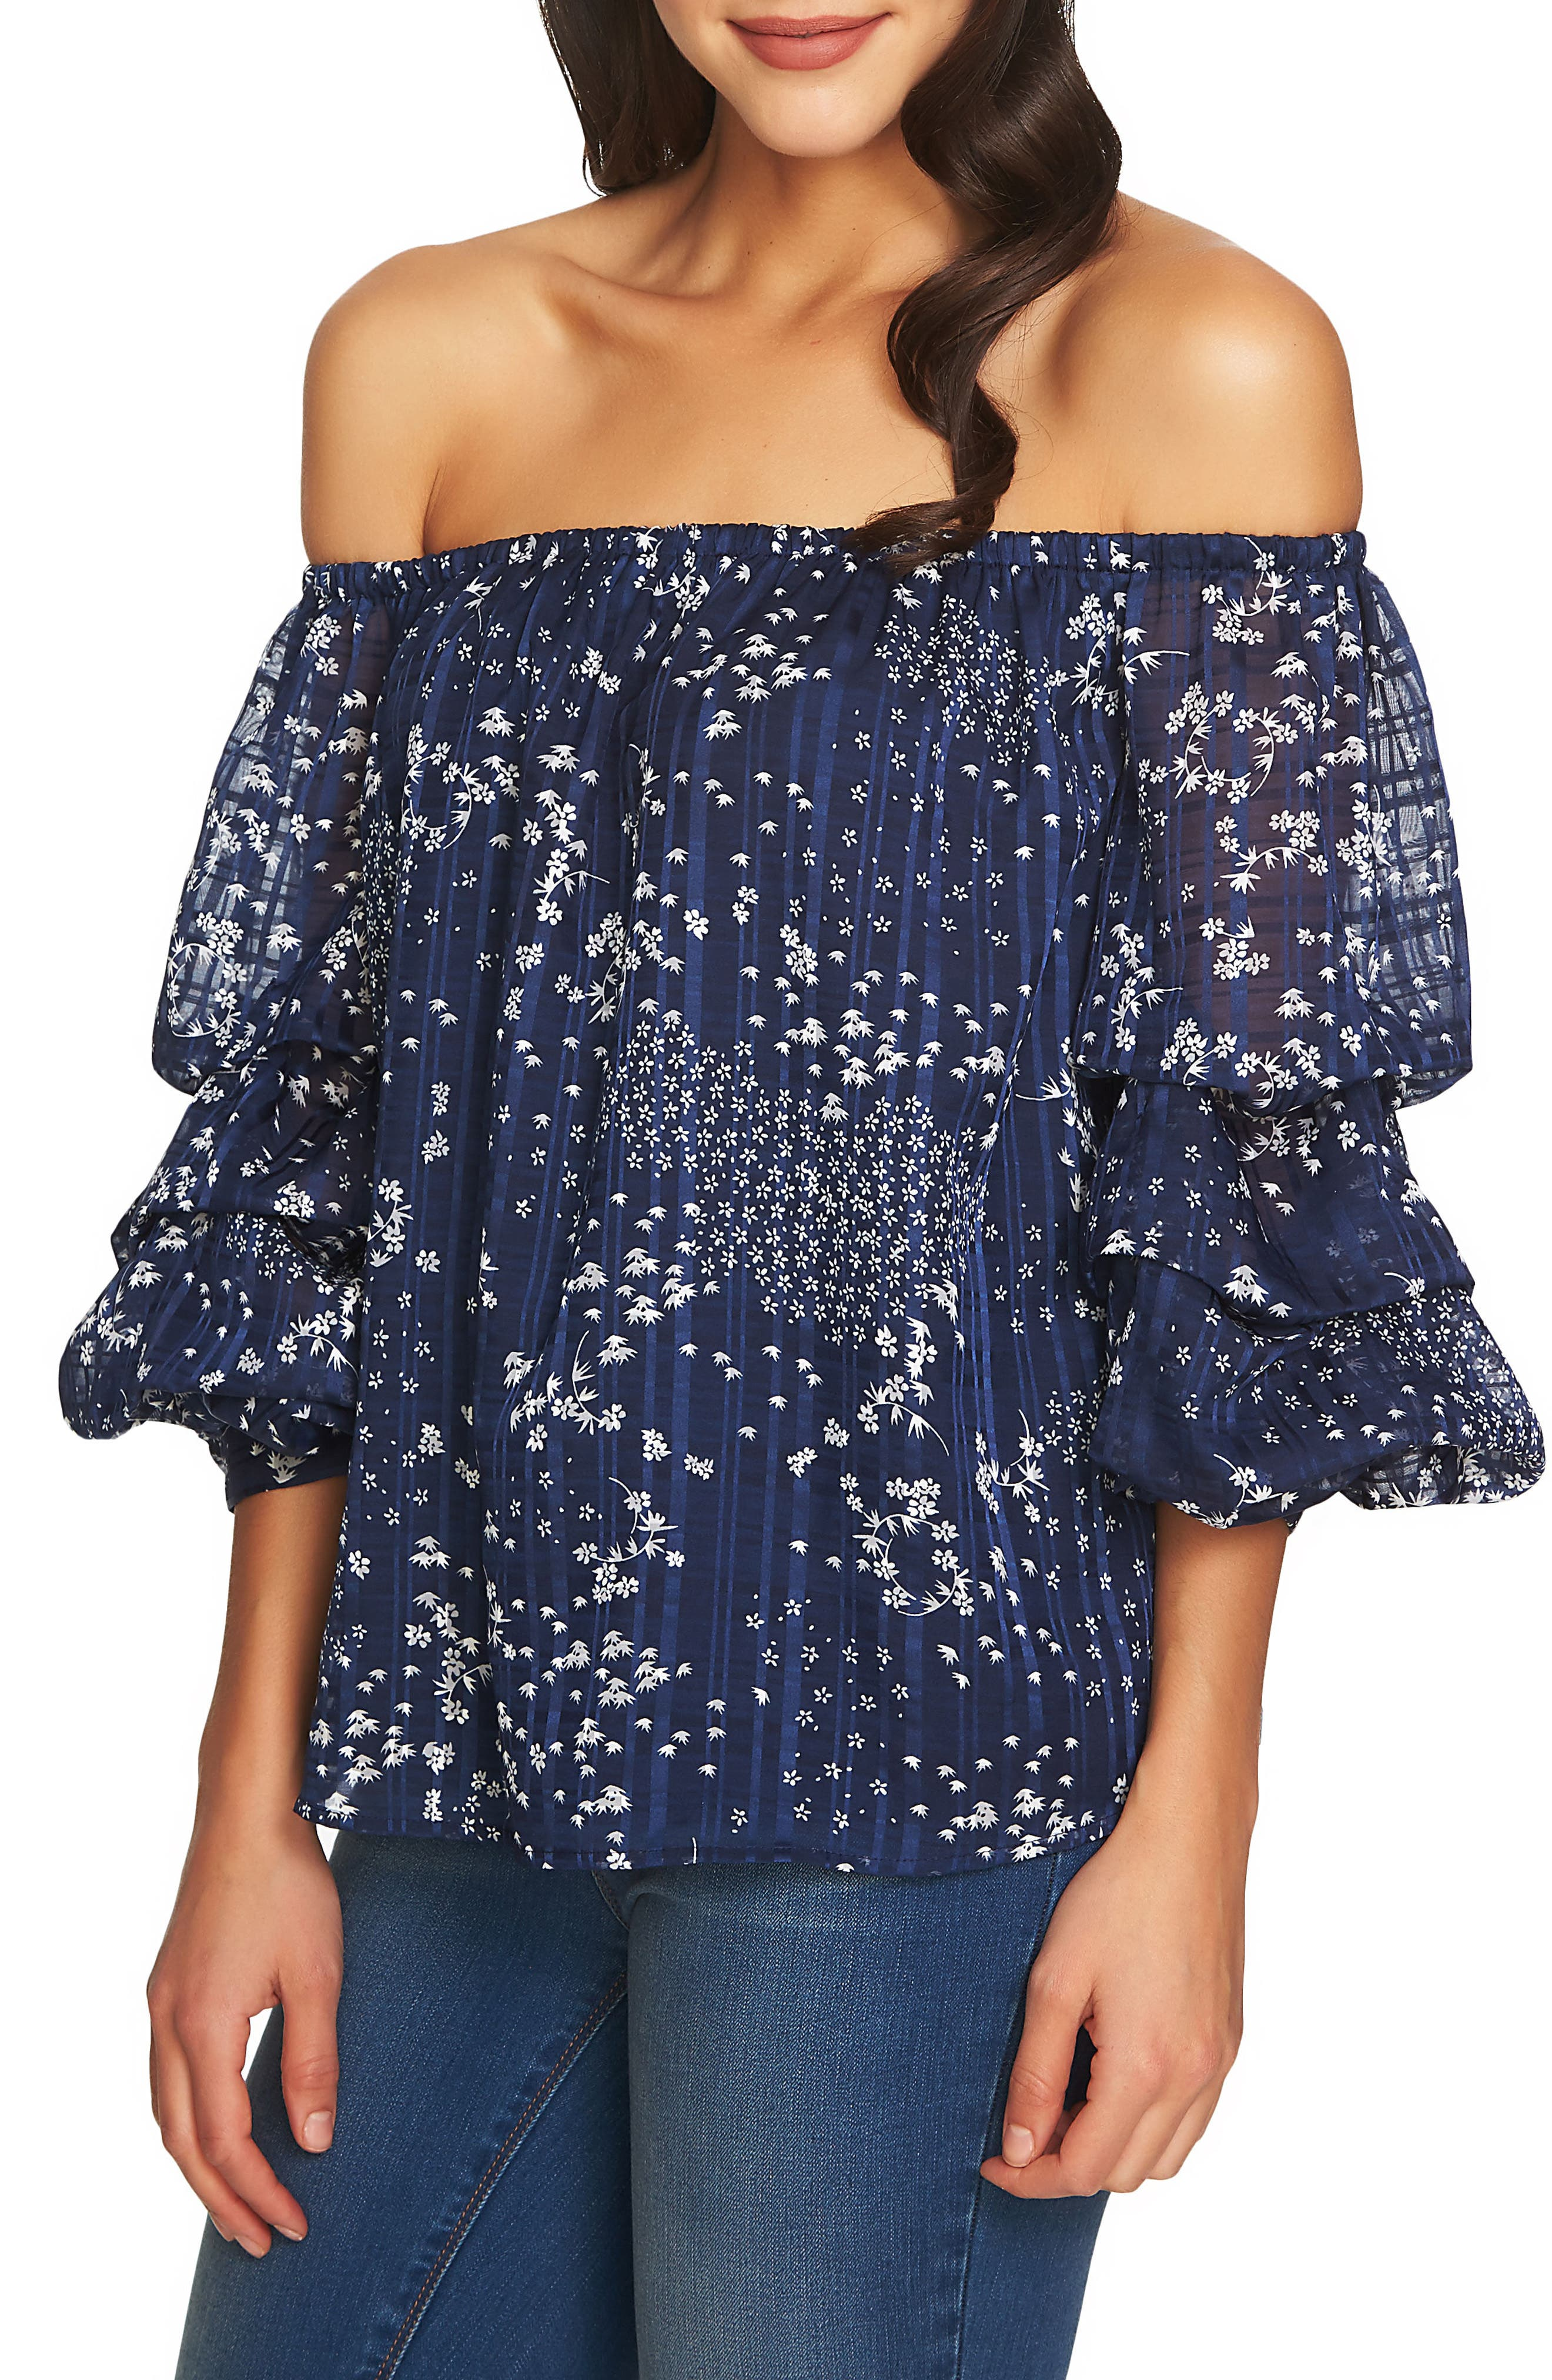 Off the Shoulder Top,                             Main thumbnail 1, color,                             453